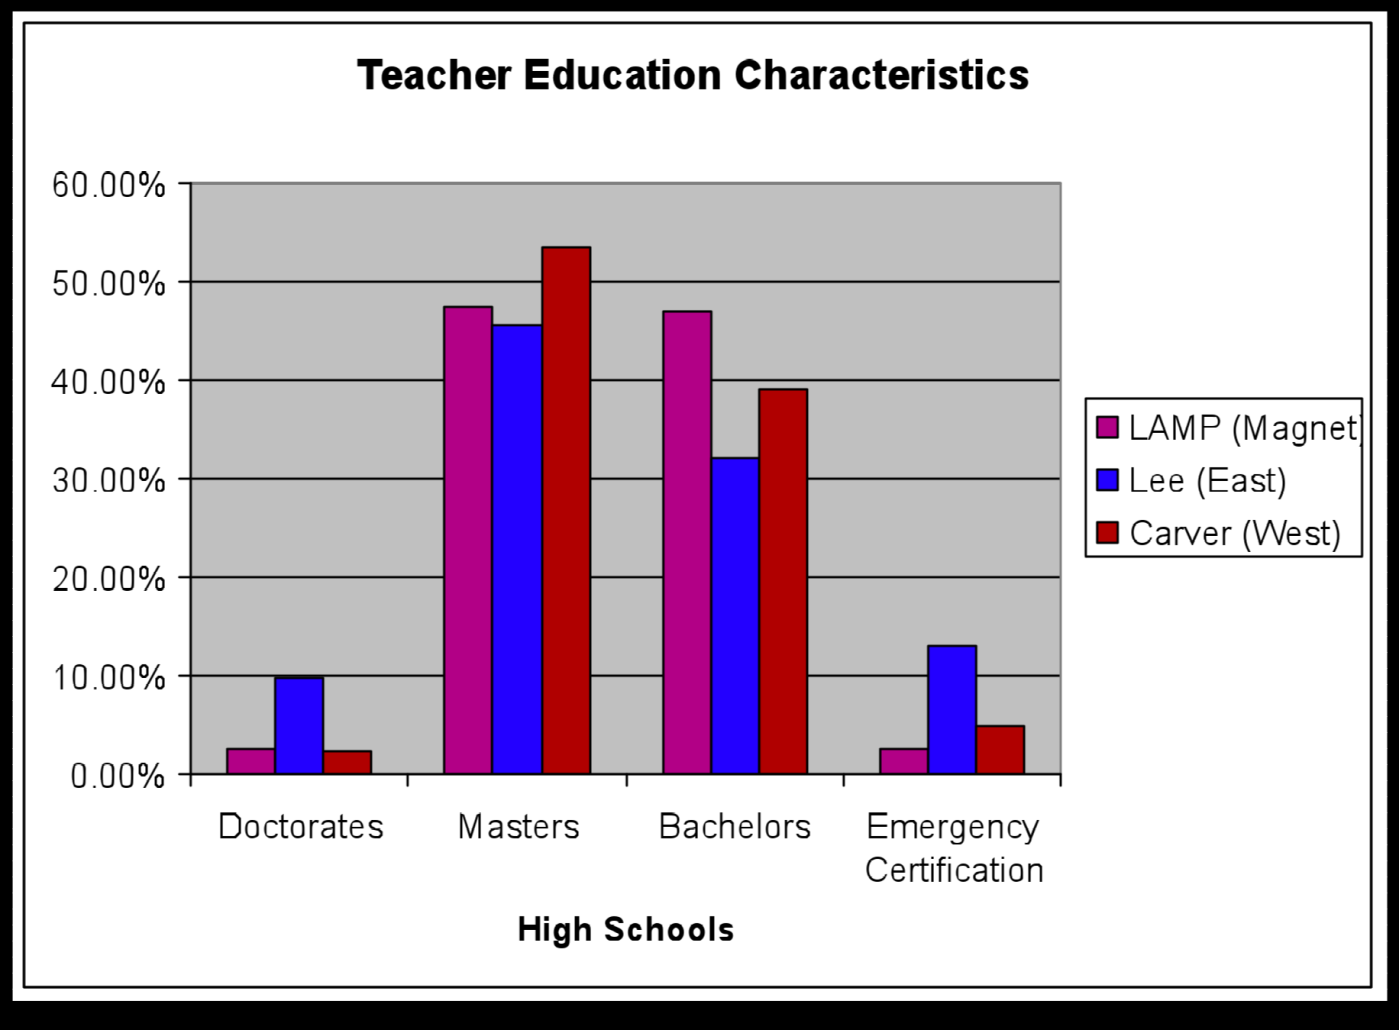 Alabama Teacher Credentials Figure 6: Montgomery High School Teachers by Education and Emergency Certification (East is Middle-Class and West is High-Poverty)